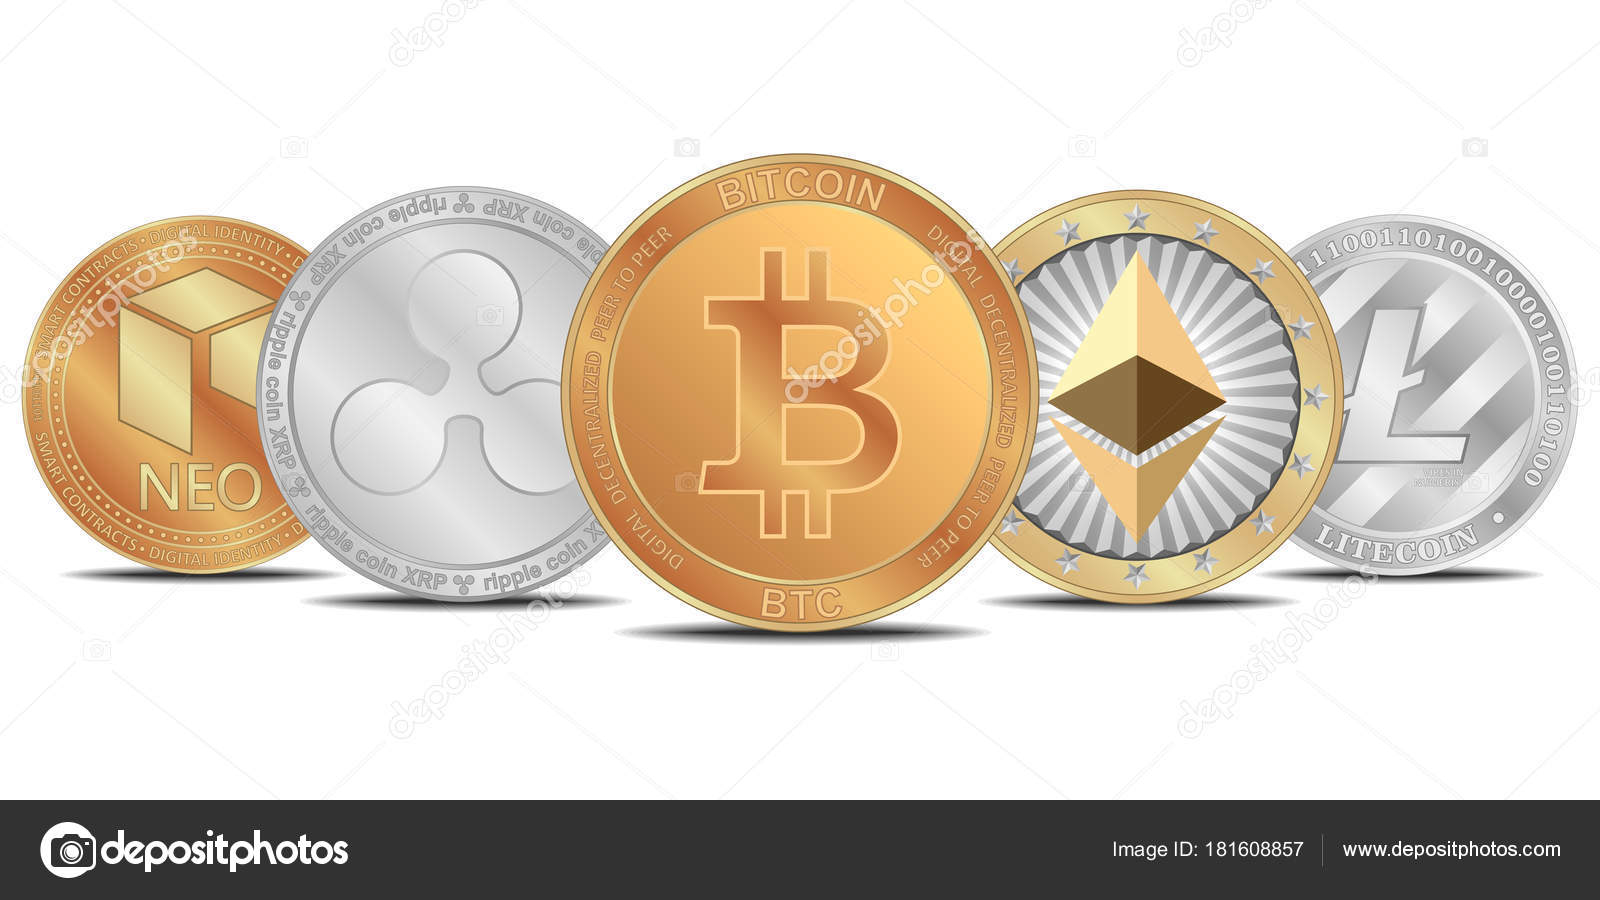 Litecoin stock symbol images symbol and sign ideas cryptocurrency set bitcoin etherium ripple neo litecoin stock cryptocurrency set bitcoin etherium ripple neo litecoin stock buycottarizona